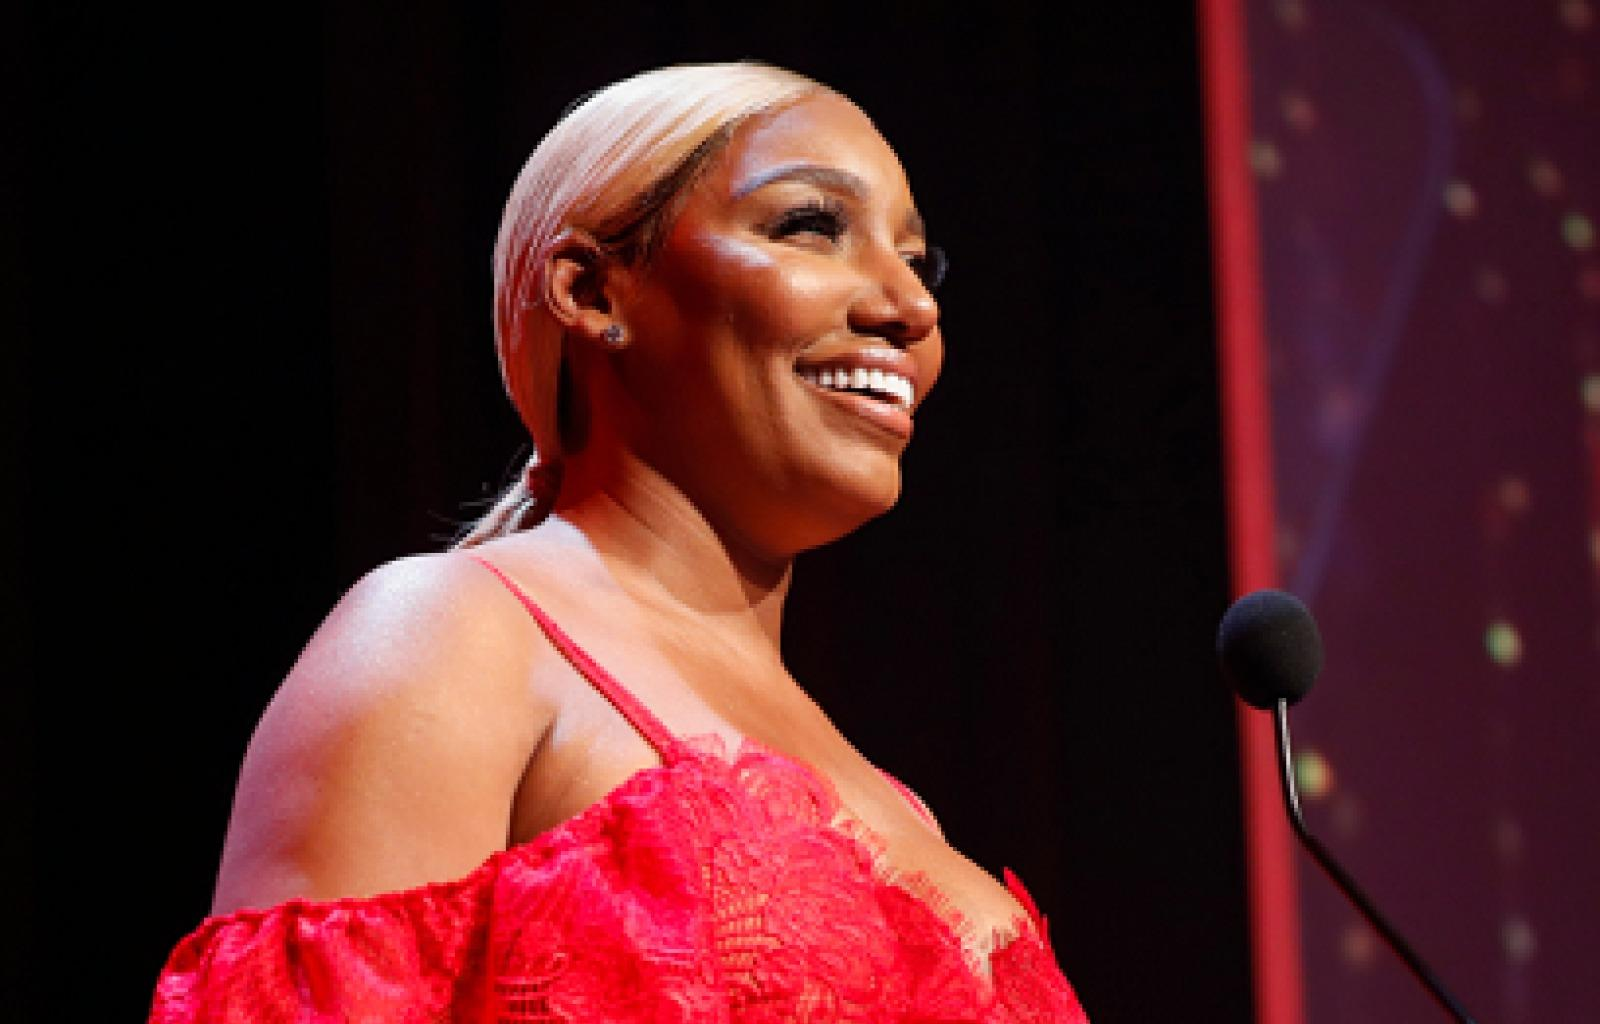 NeNe Leakes Tells Fans She Found Someone She Never Wants To Lose Again - Find Out Who It Is